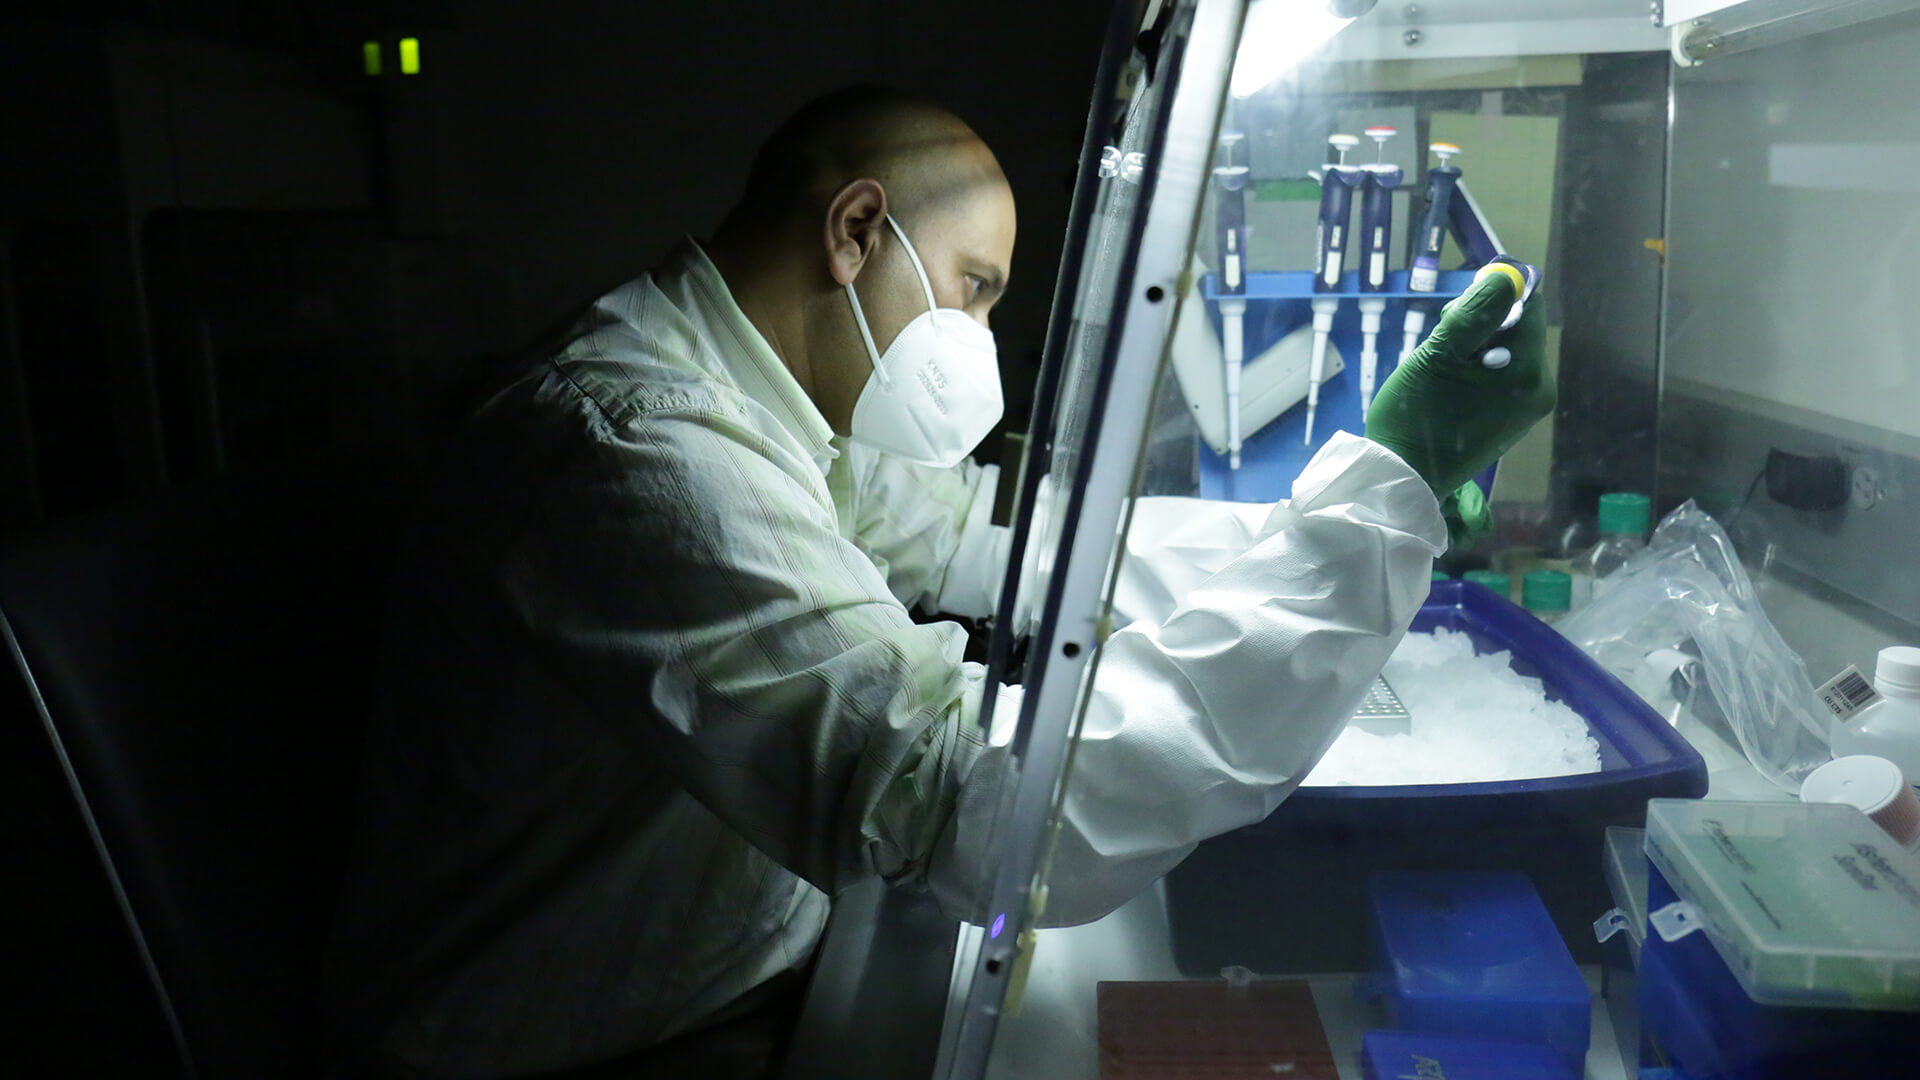 A man in white protective clothing works on a machine in a lab.